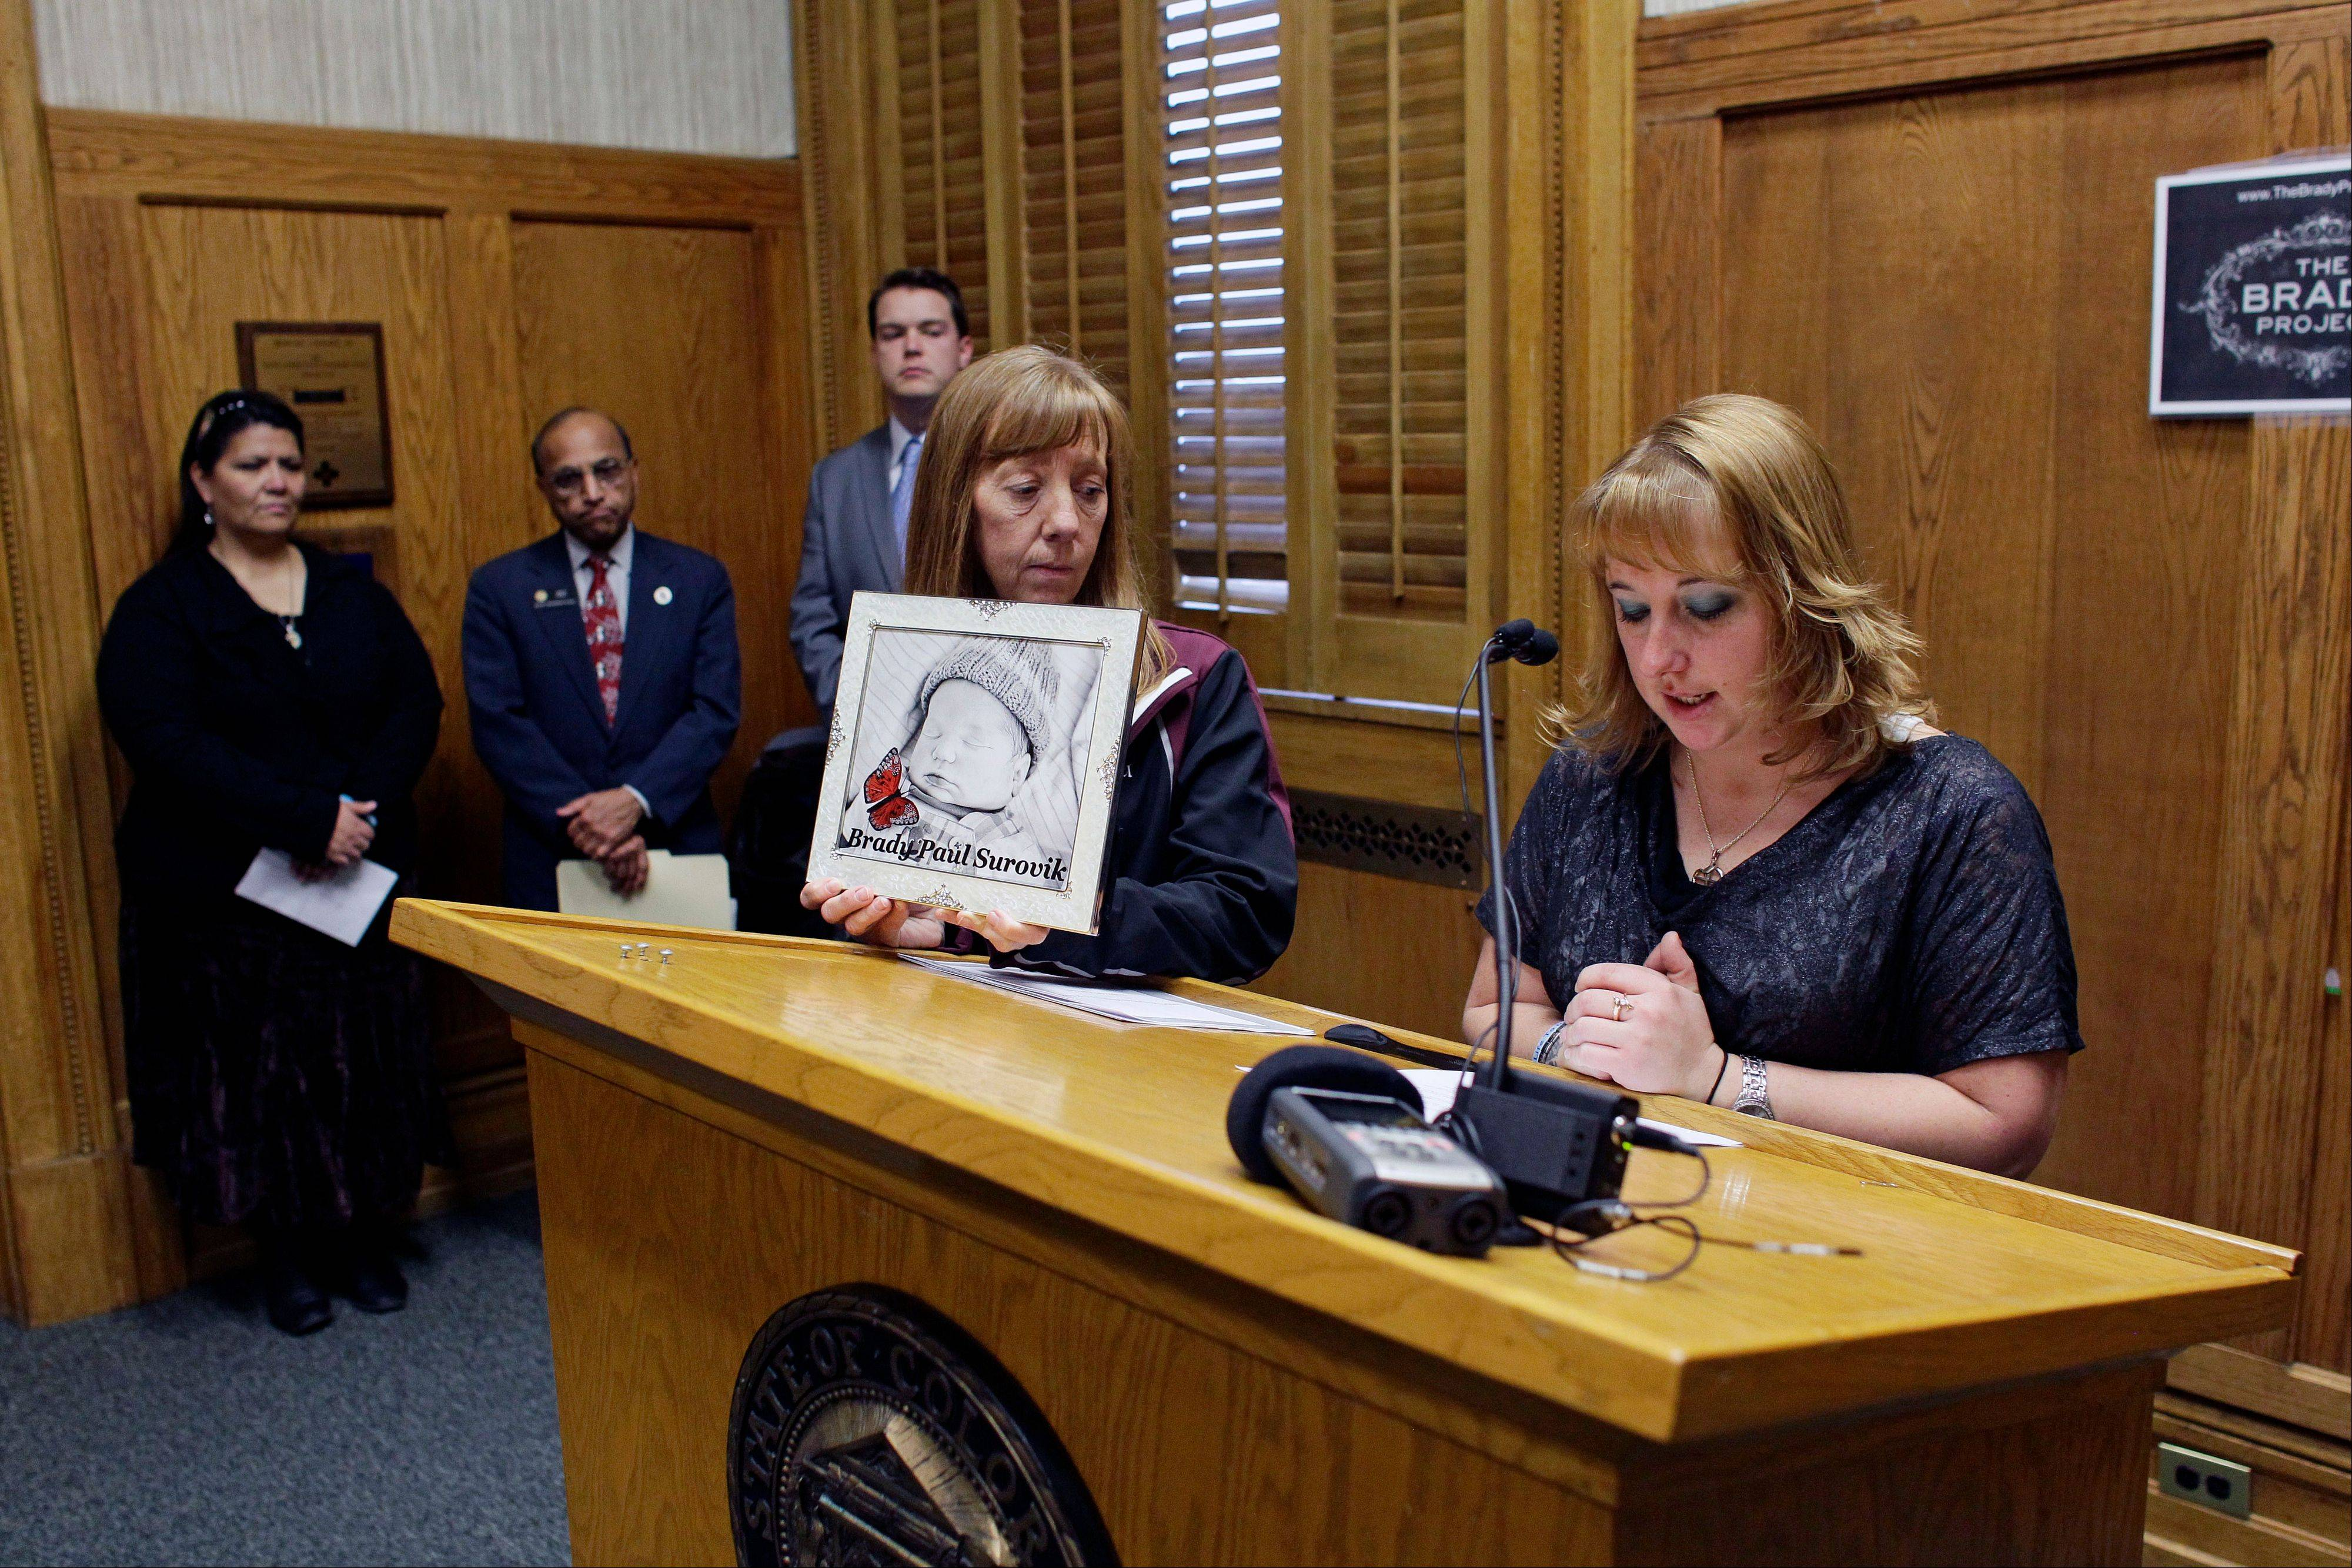 Heather Surovik, who lost her 8�-month-old unborn son when her car was struck by drunken driver Gary Sheats in 2012, speaks at a news conference Monday, promoting a political drive to grant �personhood� status to unborn fetuses at the Colorado State Capitol in Denver.